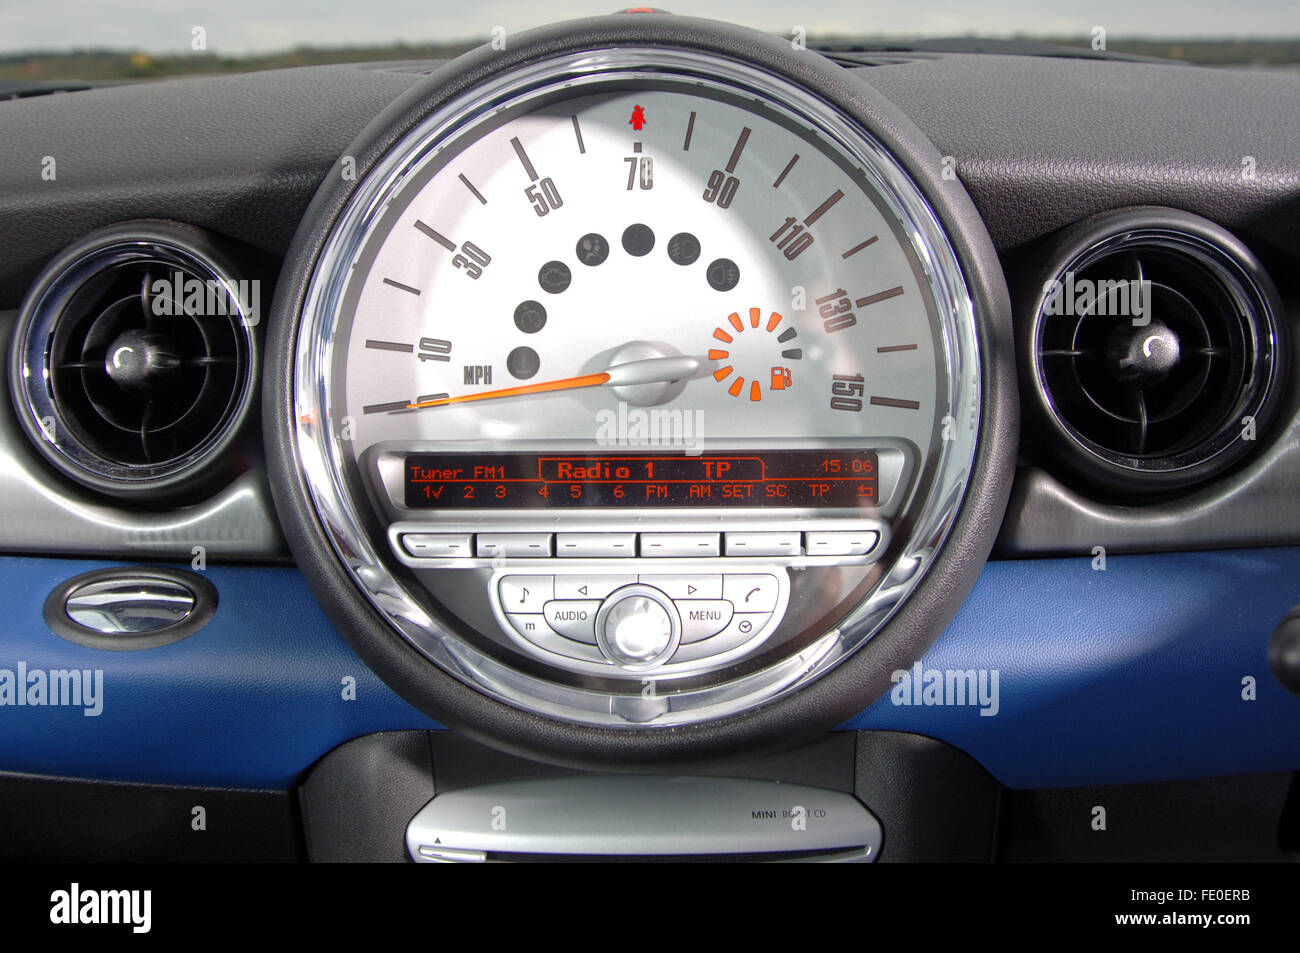 speedometer mini high resolution stock photography and images - alamy  alamy